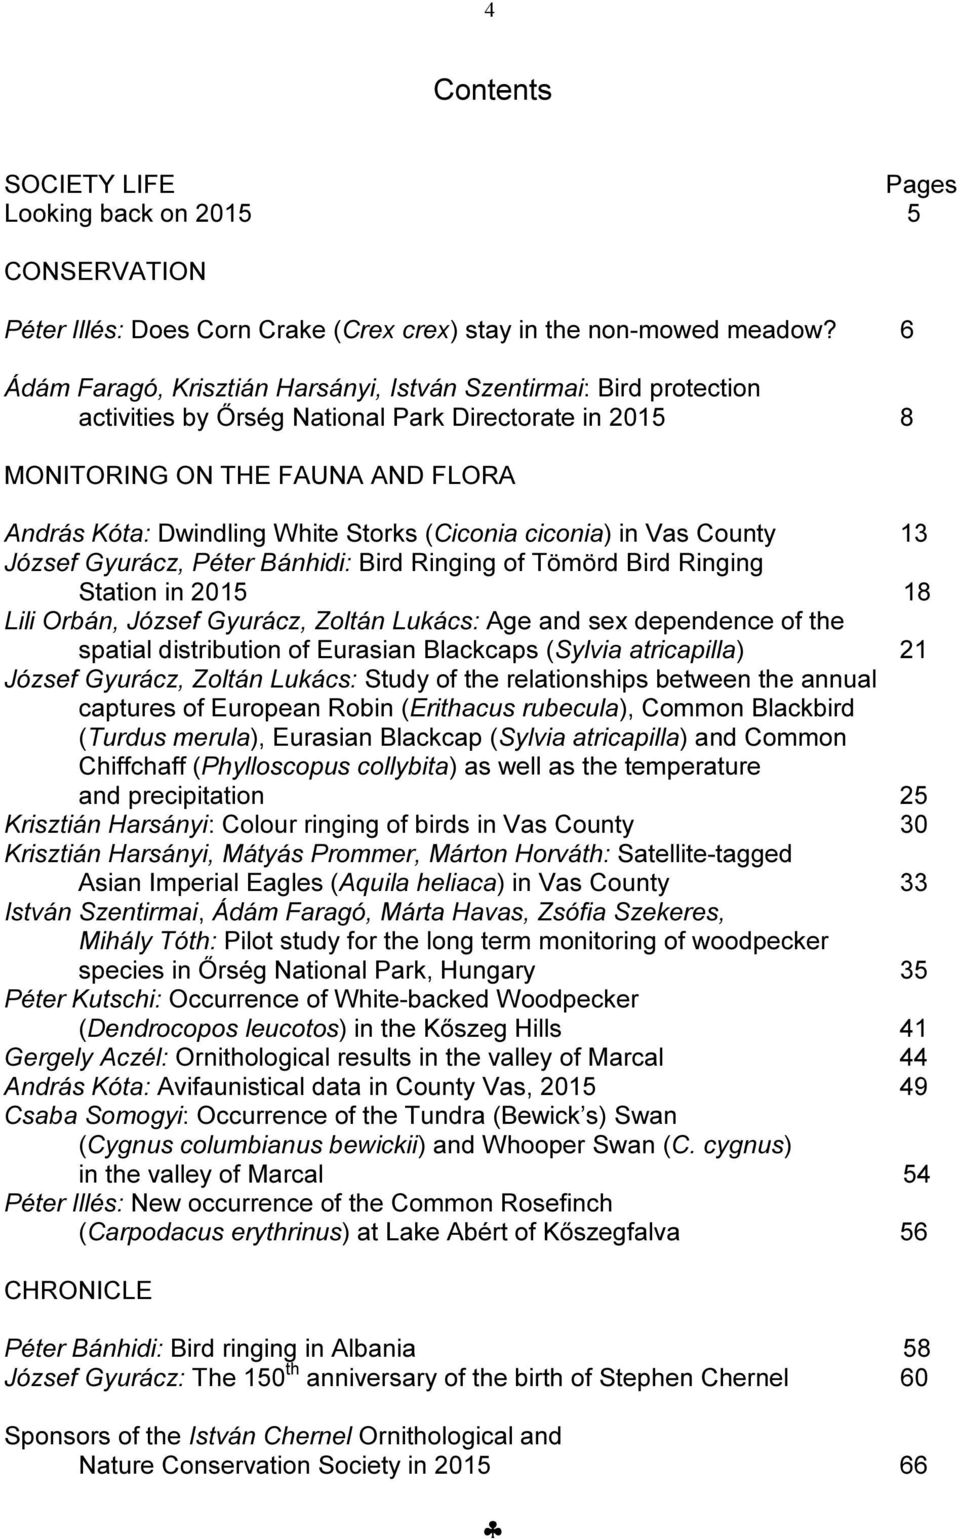 (Ciconia ciconia) in Vas County 13 József Gyurácz, Péter Bánhidi: Bird Ringing of Tömörd Bird Ringing Station in 2015 18 Lili Orbán, József Gyurácz, Zoltán Lukács: Age and sex dependence of the